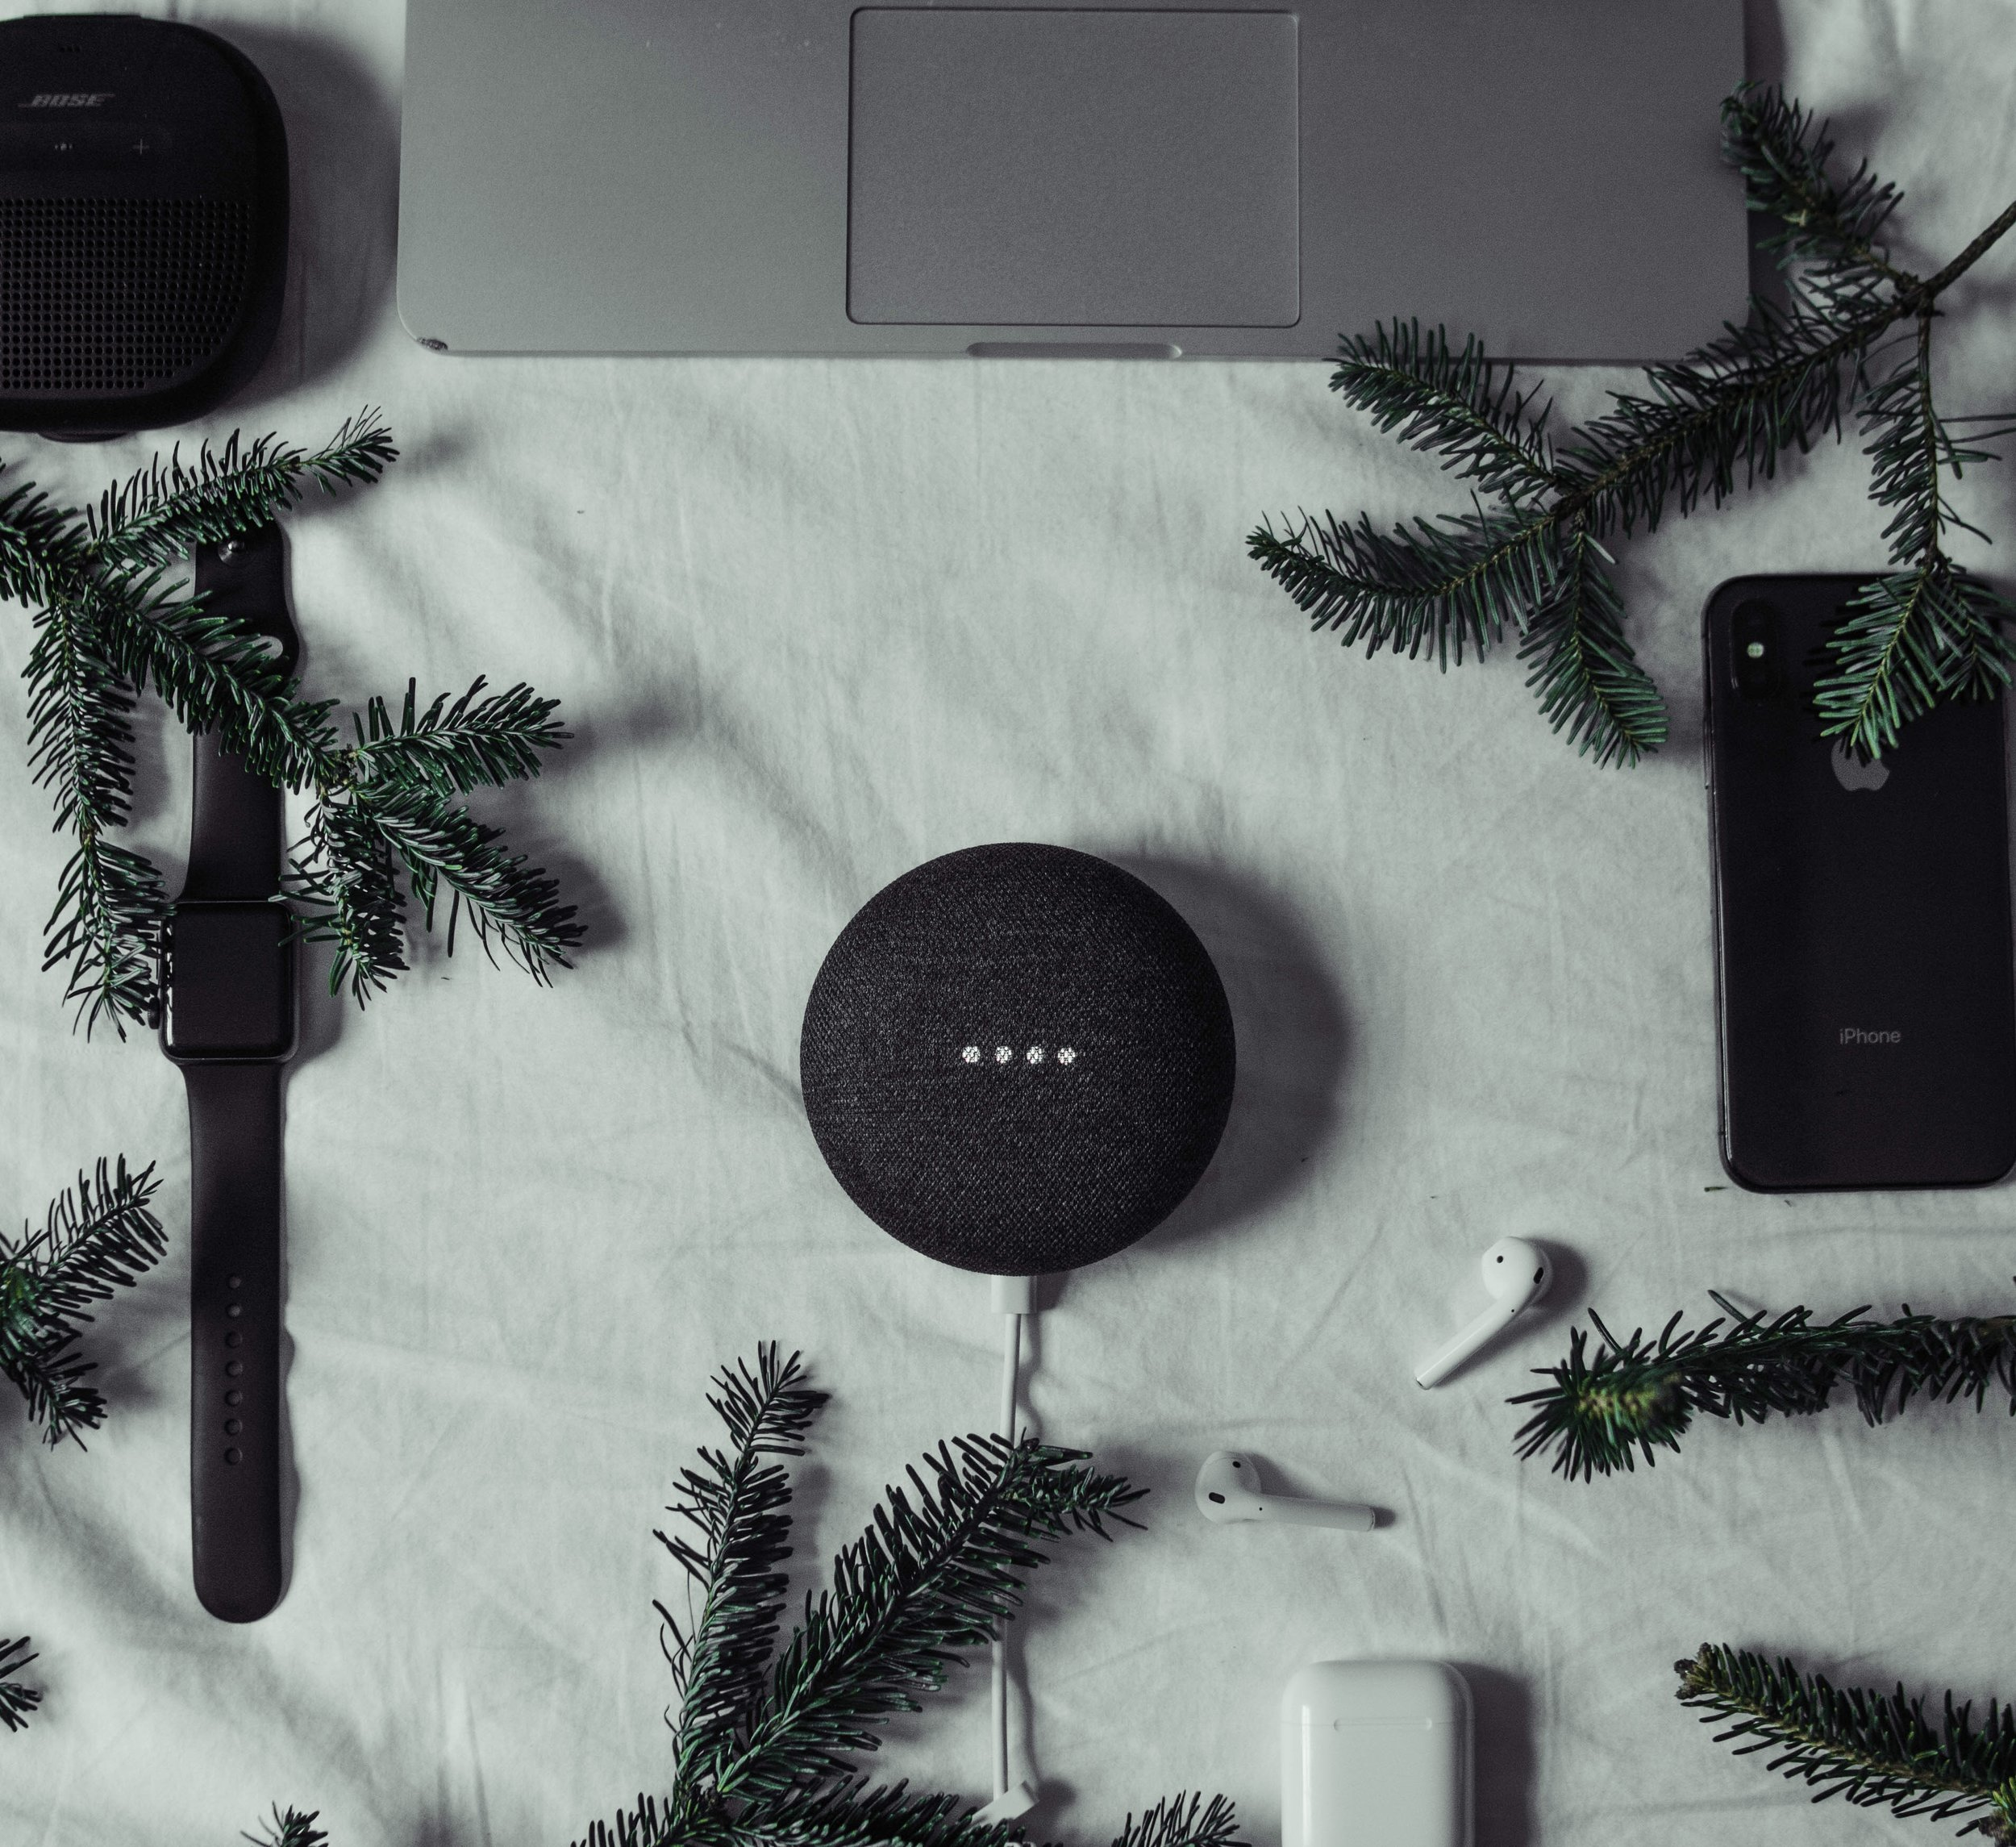 Chicago's best corporate gift ideas for corporate gifting. Get your product in gift guides and product roundups in top tier media placements.